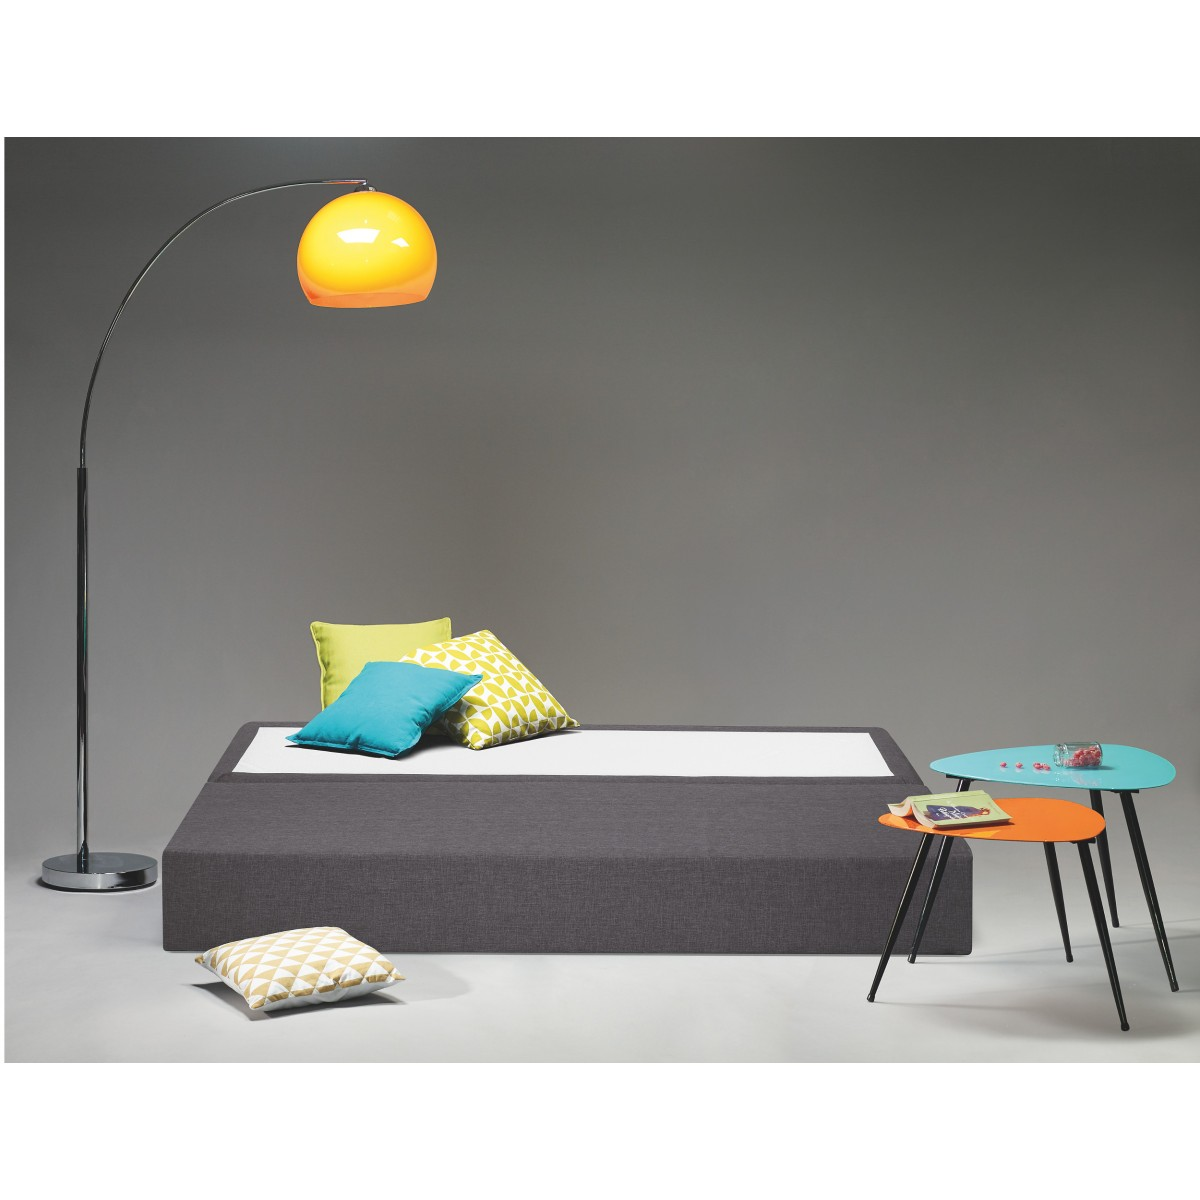 merinos soldes 1 matelas kylia 23 cm catgorie pneu de voiture. Black Bedroom Furniture Sets. Home Design Ideas